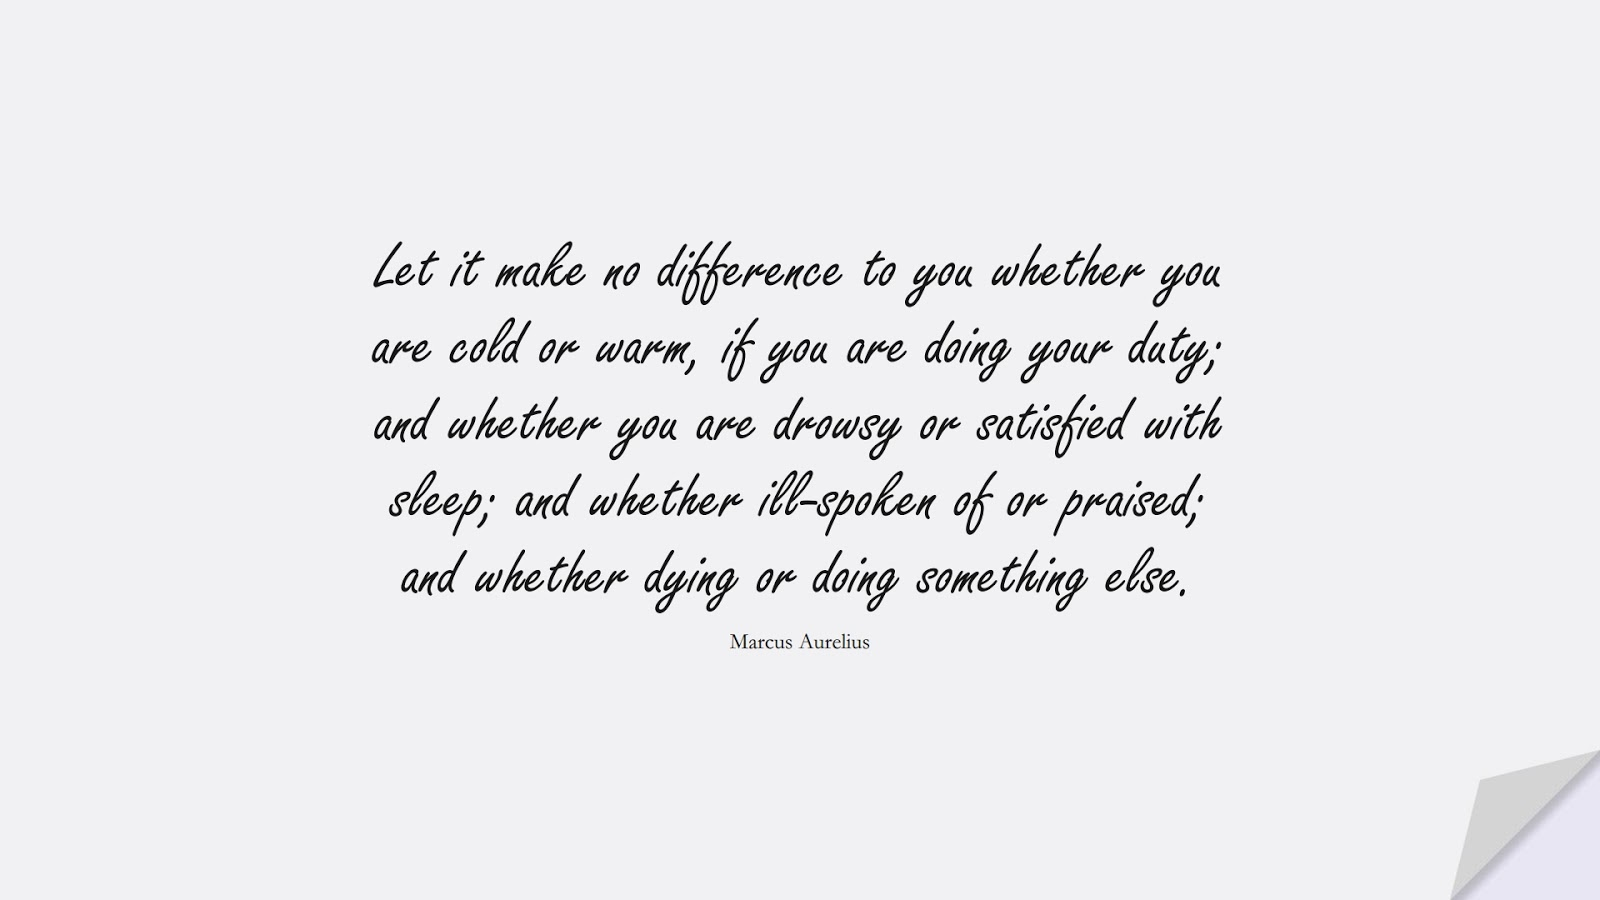 Let it make no difference to you whether you are cold or warm, if you are doing your duty; and whether you are drowsy or satisfied with sleep; and whether ill-spoken of or praised; and whether dying or doing something else. (Marcus Aurelius);  #MarcusAureliusQuotes